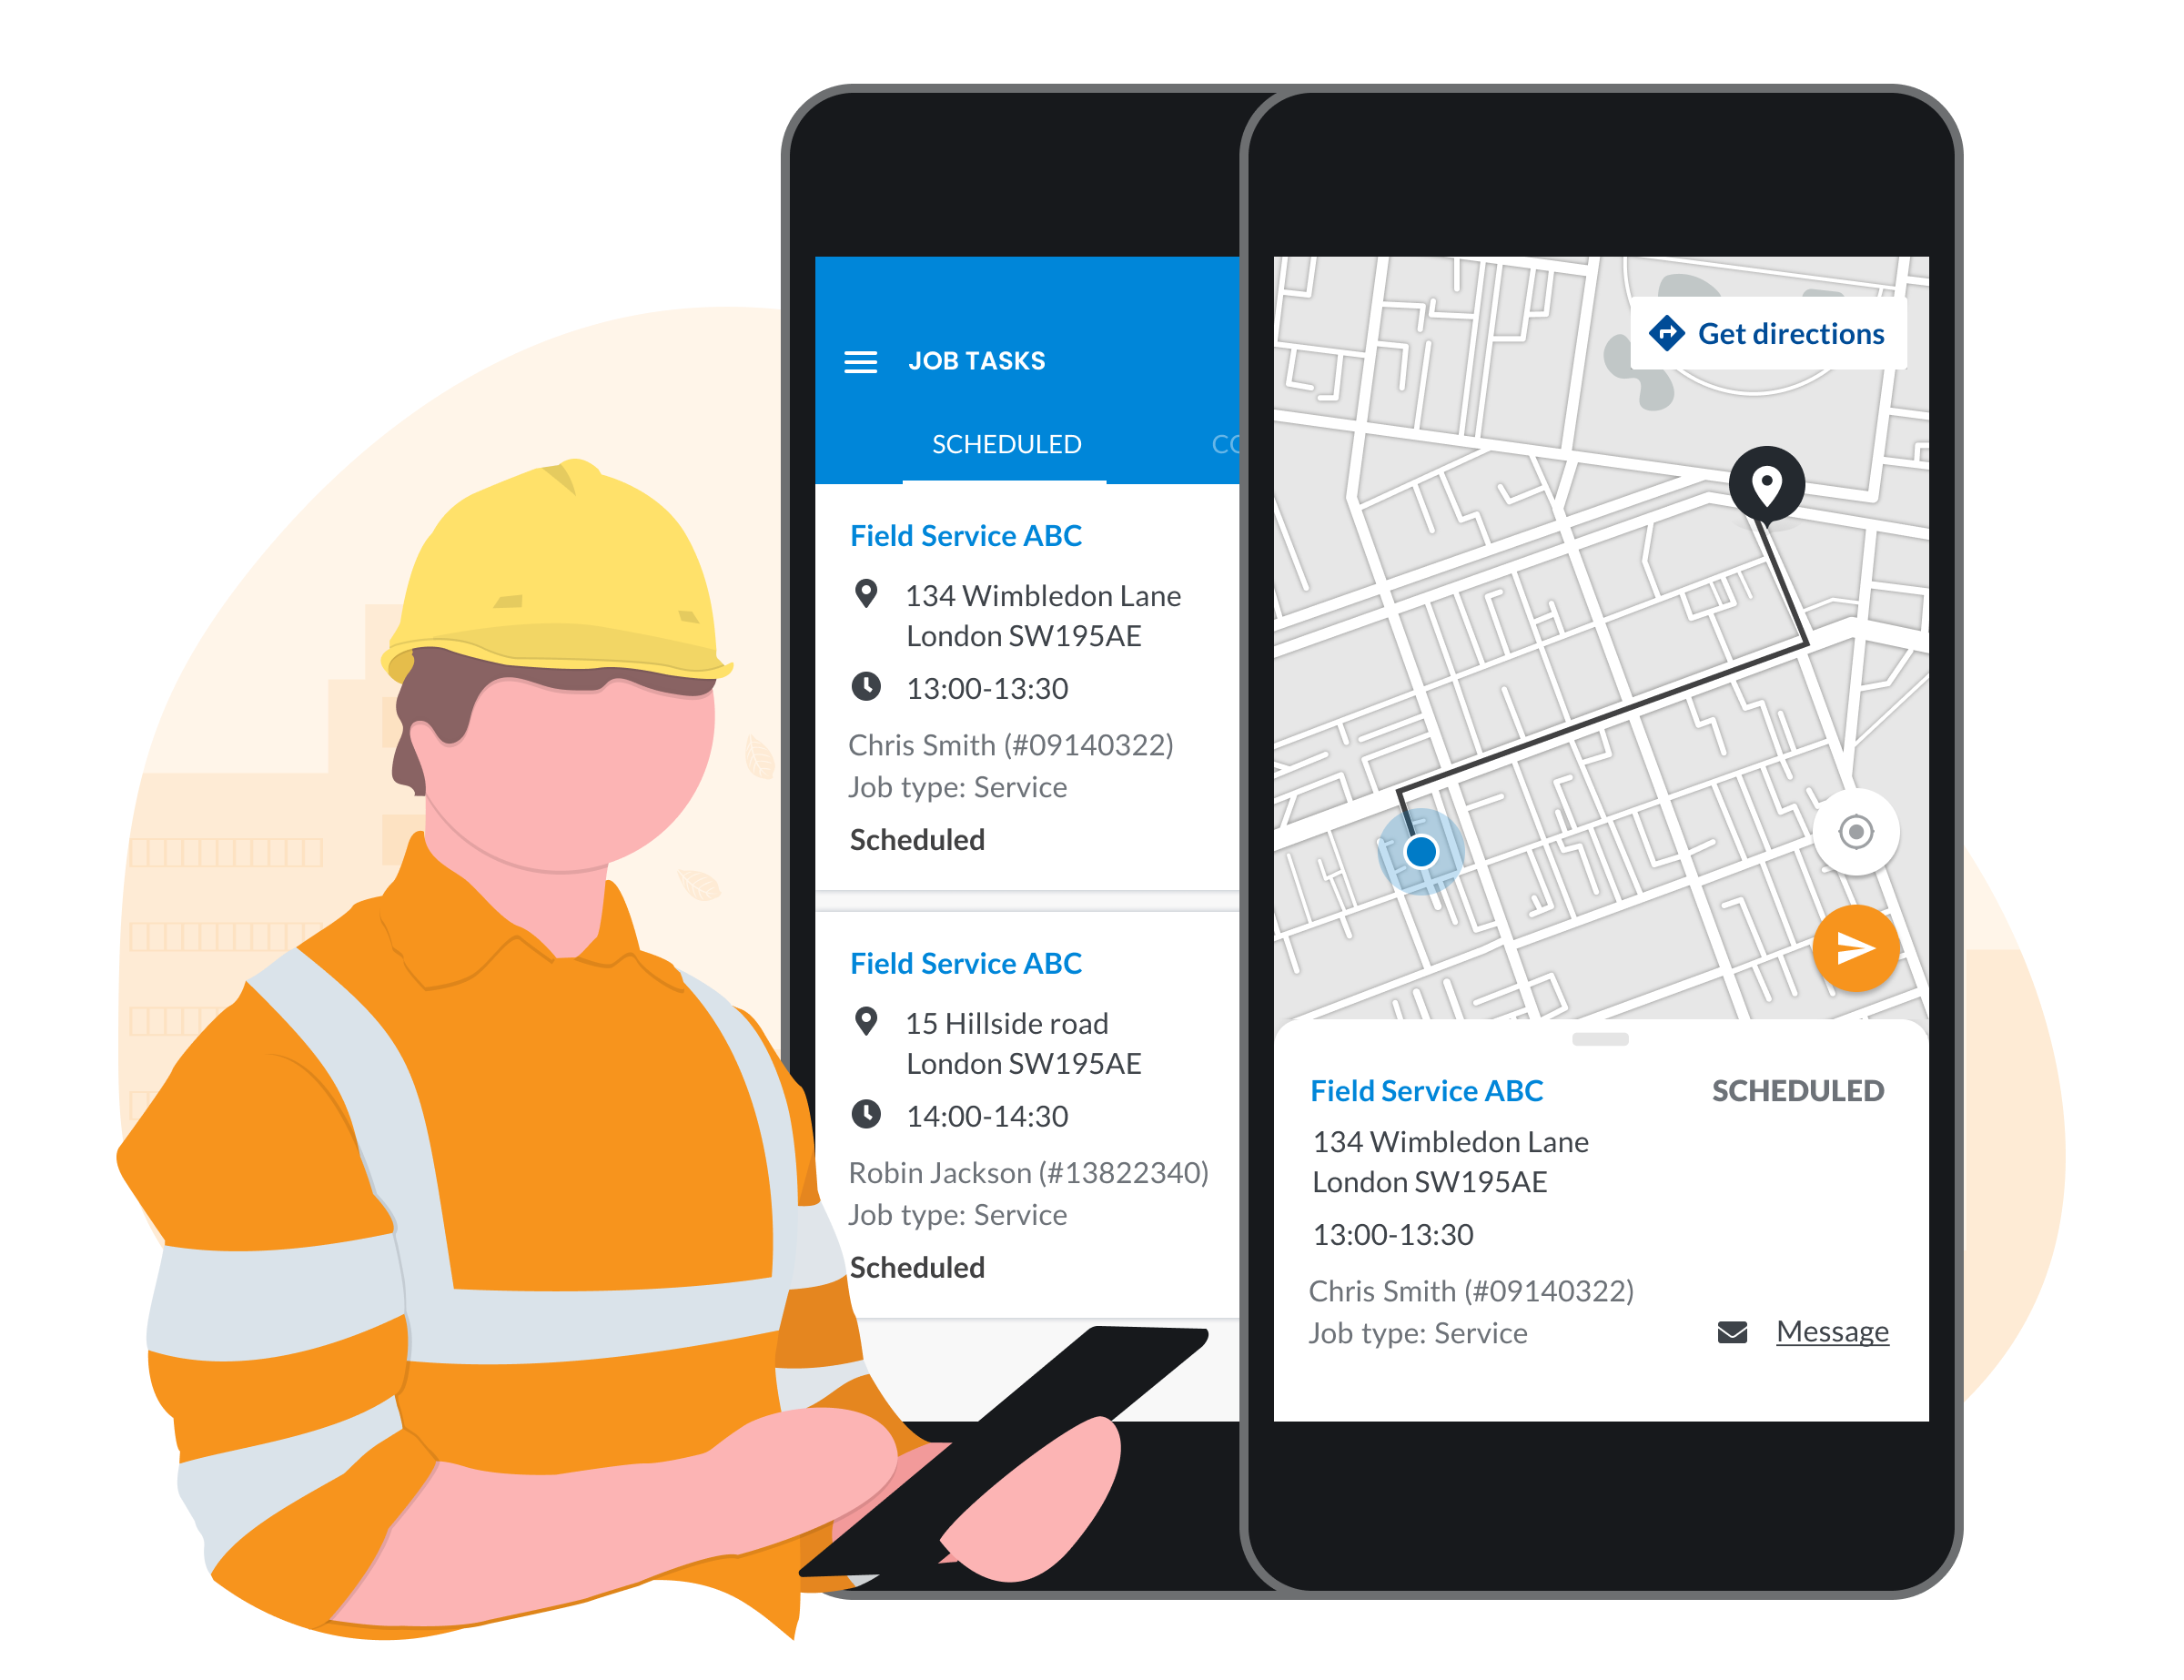 Manage My Day technician app for mobile workers